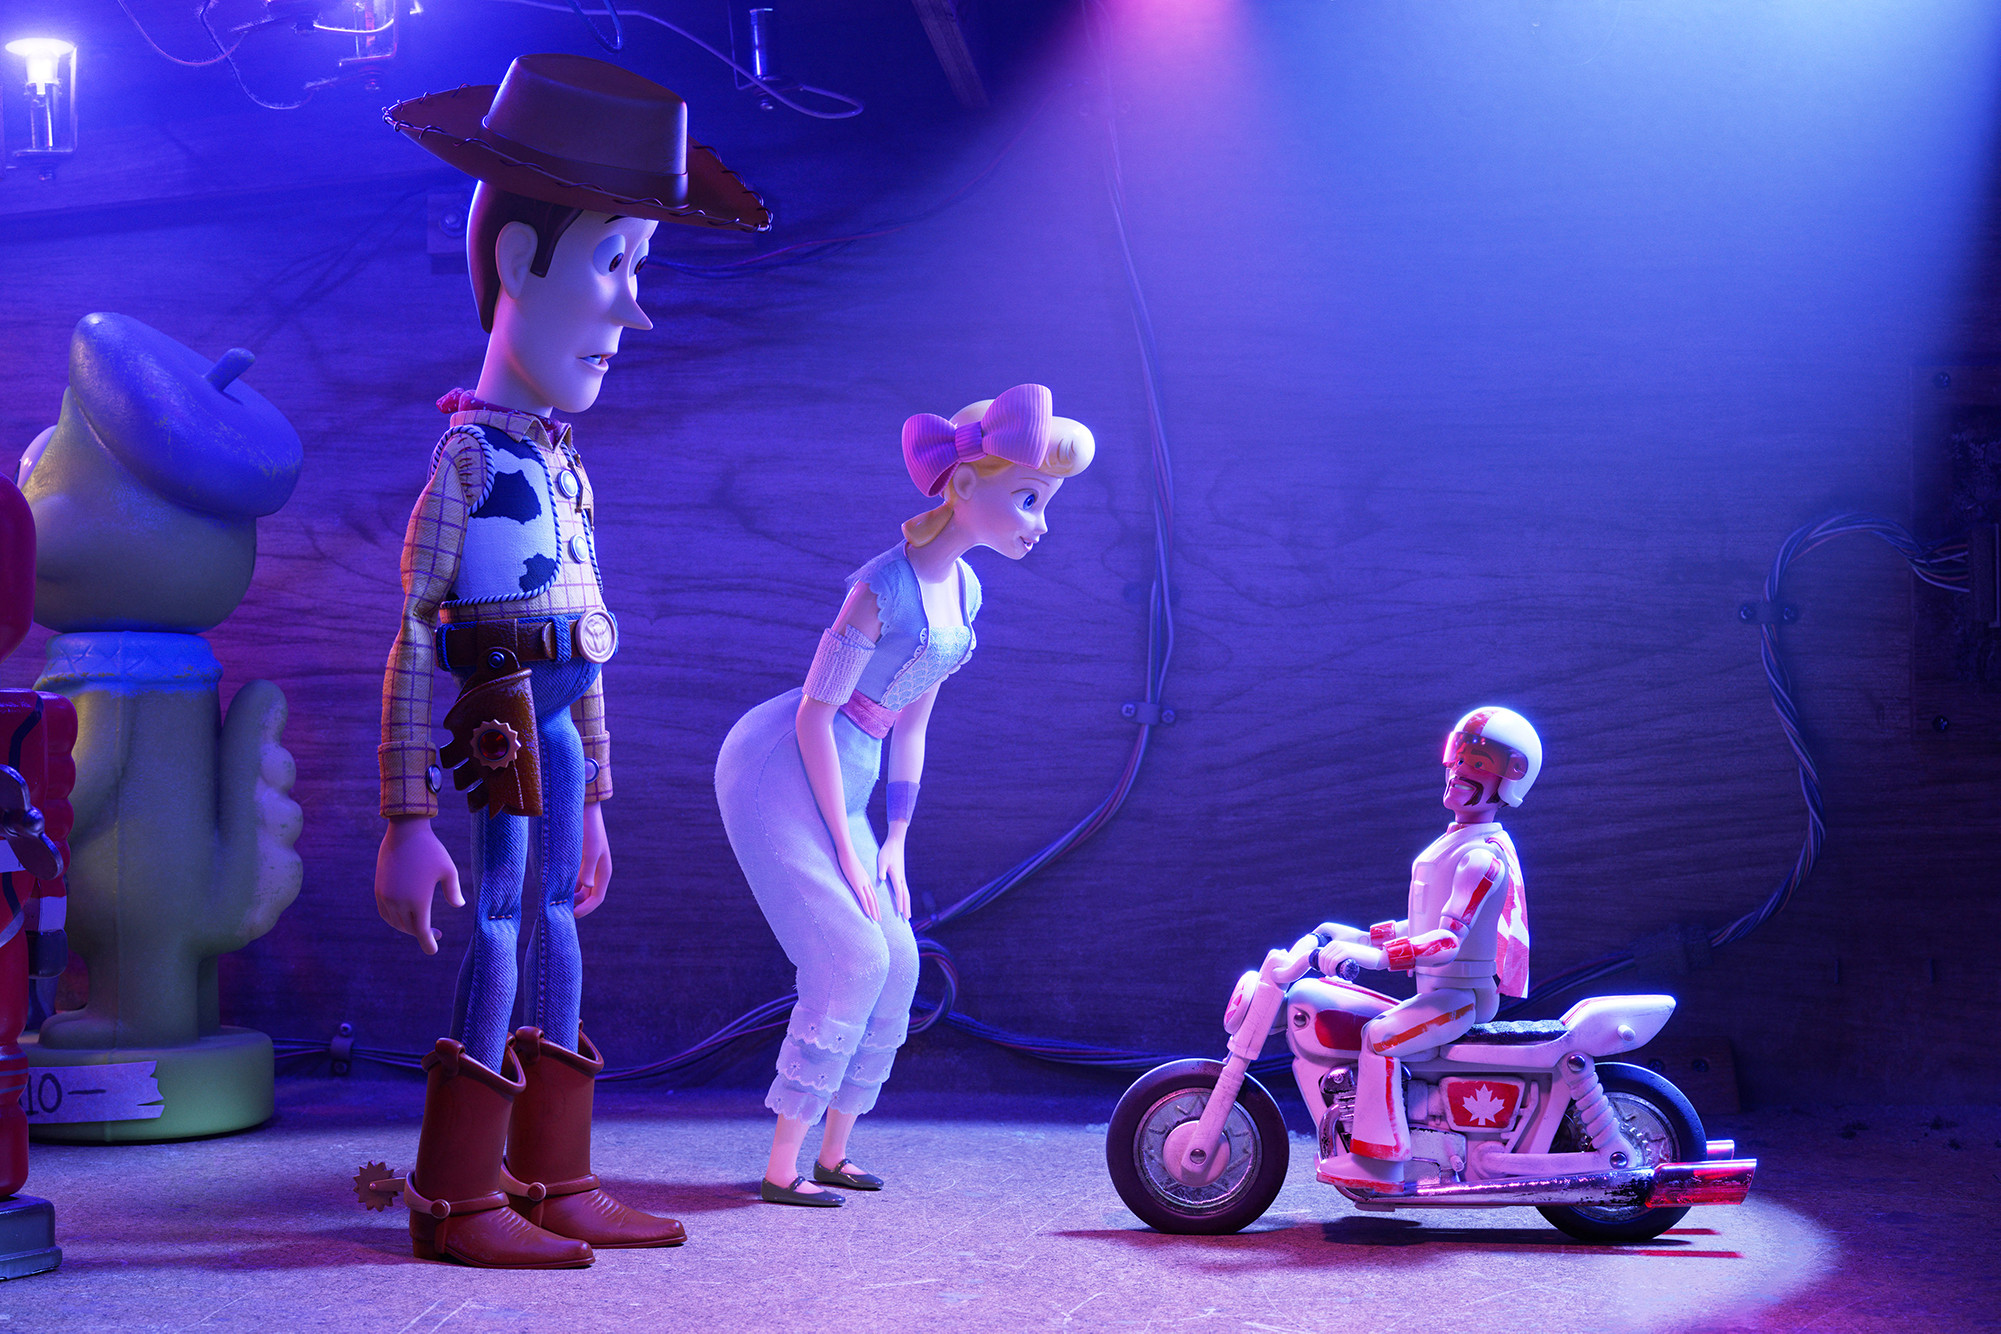 Tom Hanks, Annie Potts, and Keanu Reeves in  Toy Story 4  | Walt Disney Studios Motion Pictures